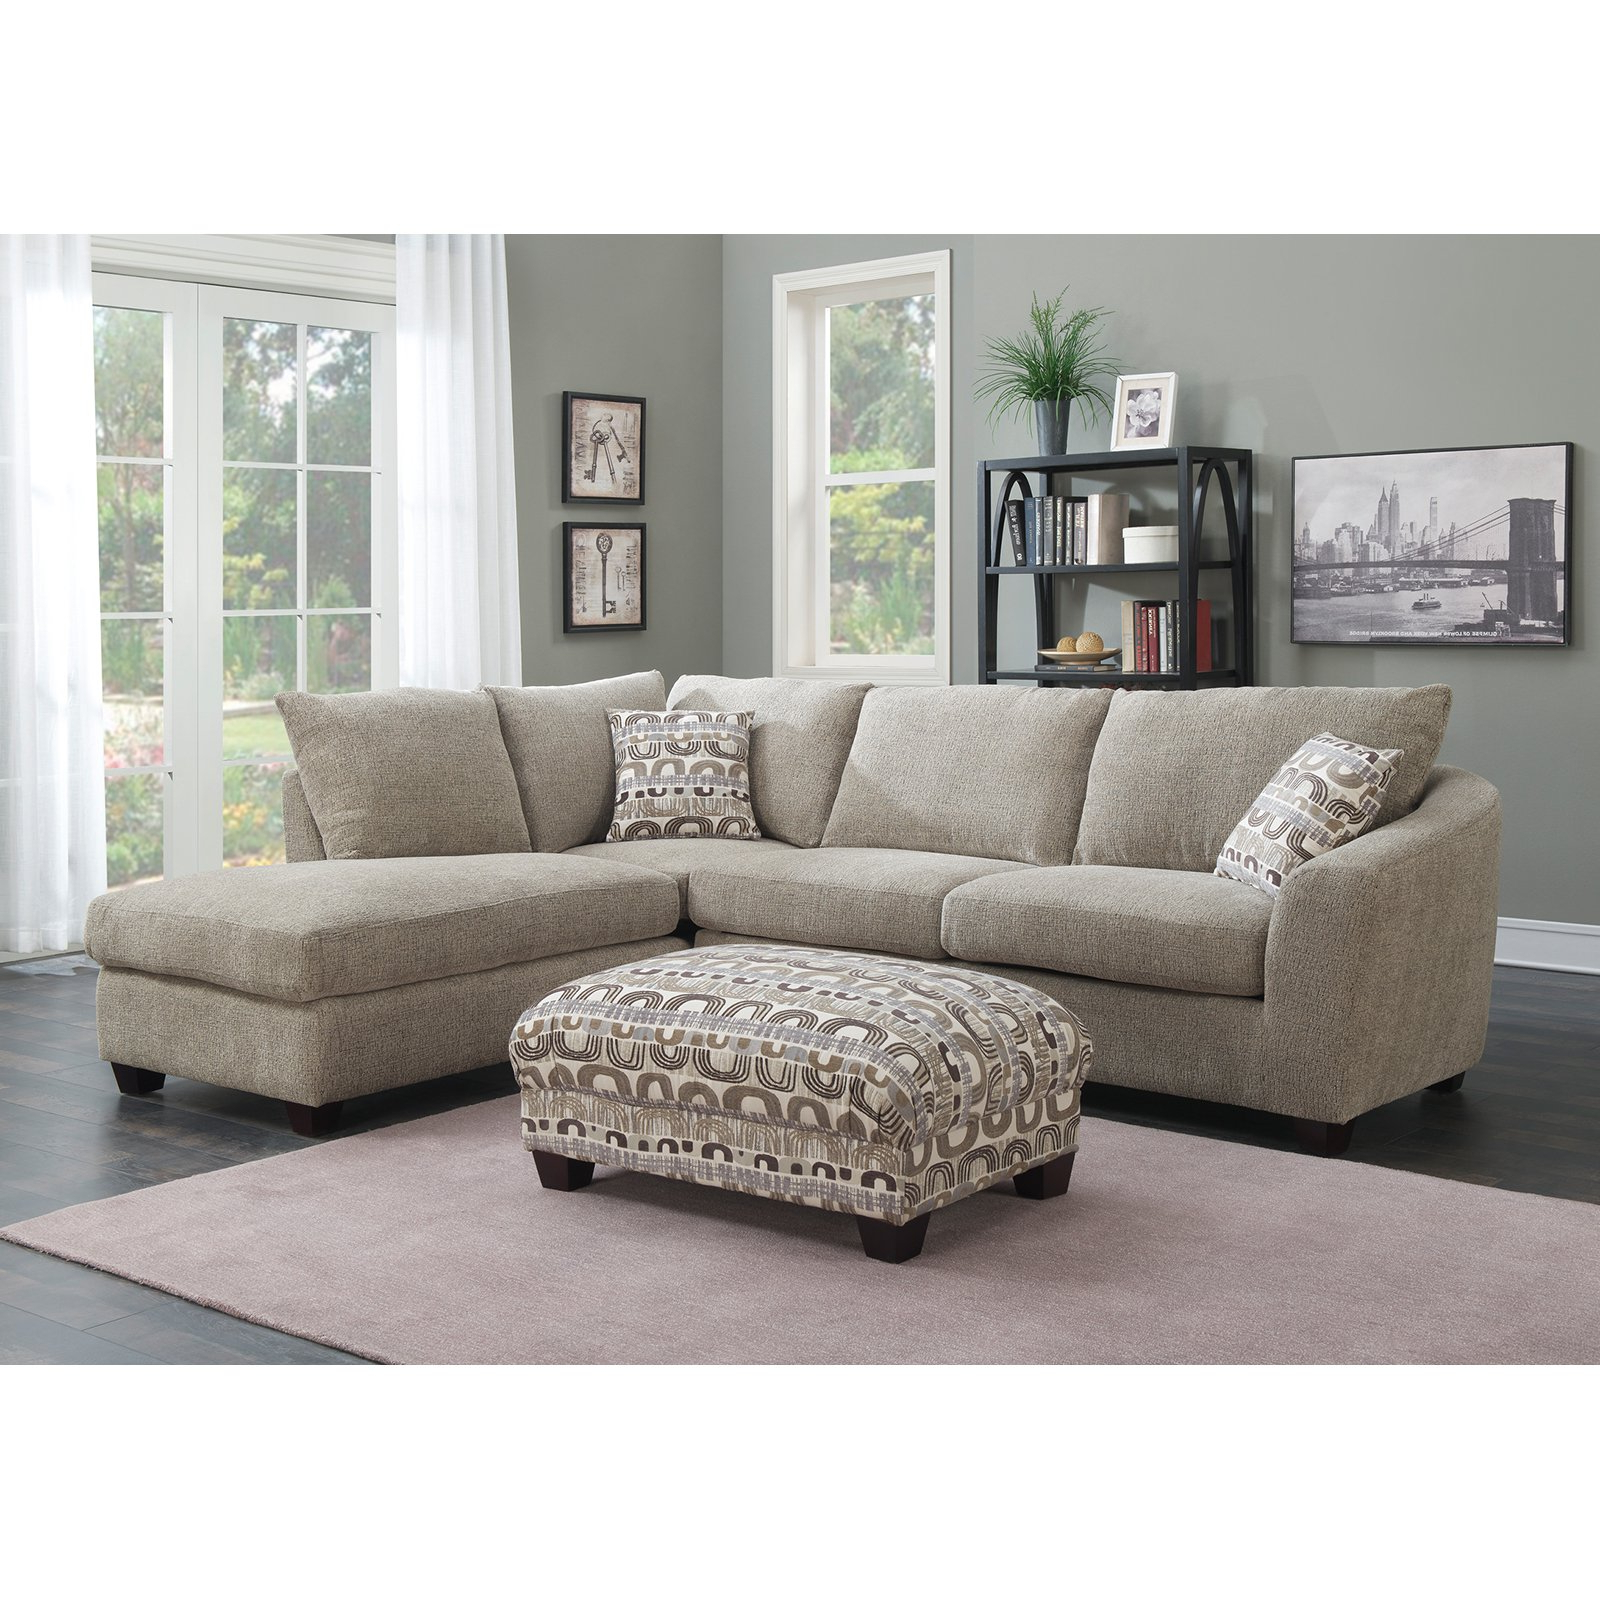 Arrowmask 2 Piece Sectionals With Raf Chaise Throughout Famous 2 Piece Sectional With Chaise – Tidex (View 3 of 20)